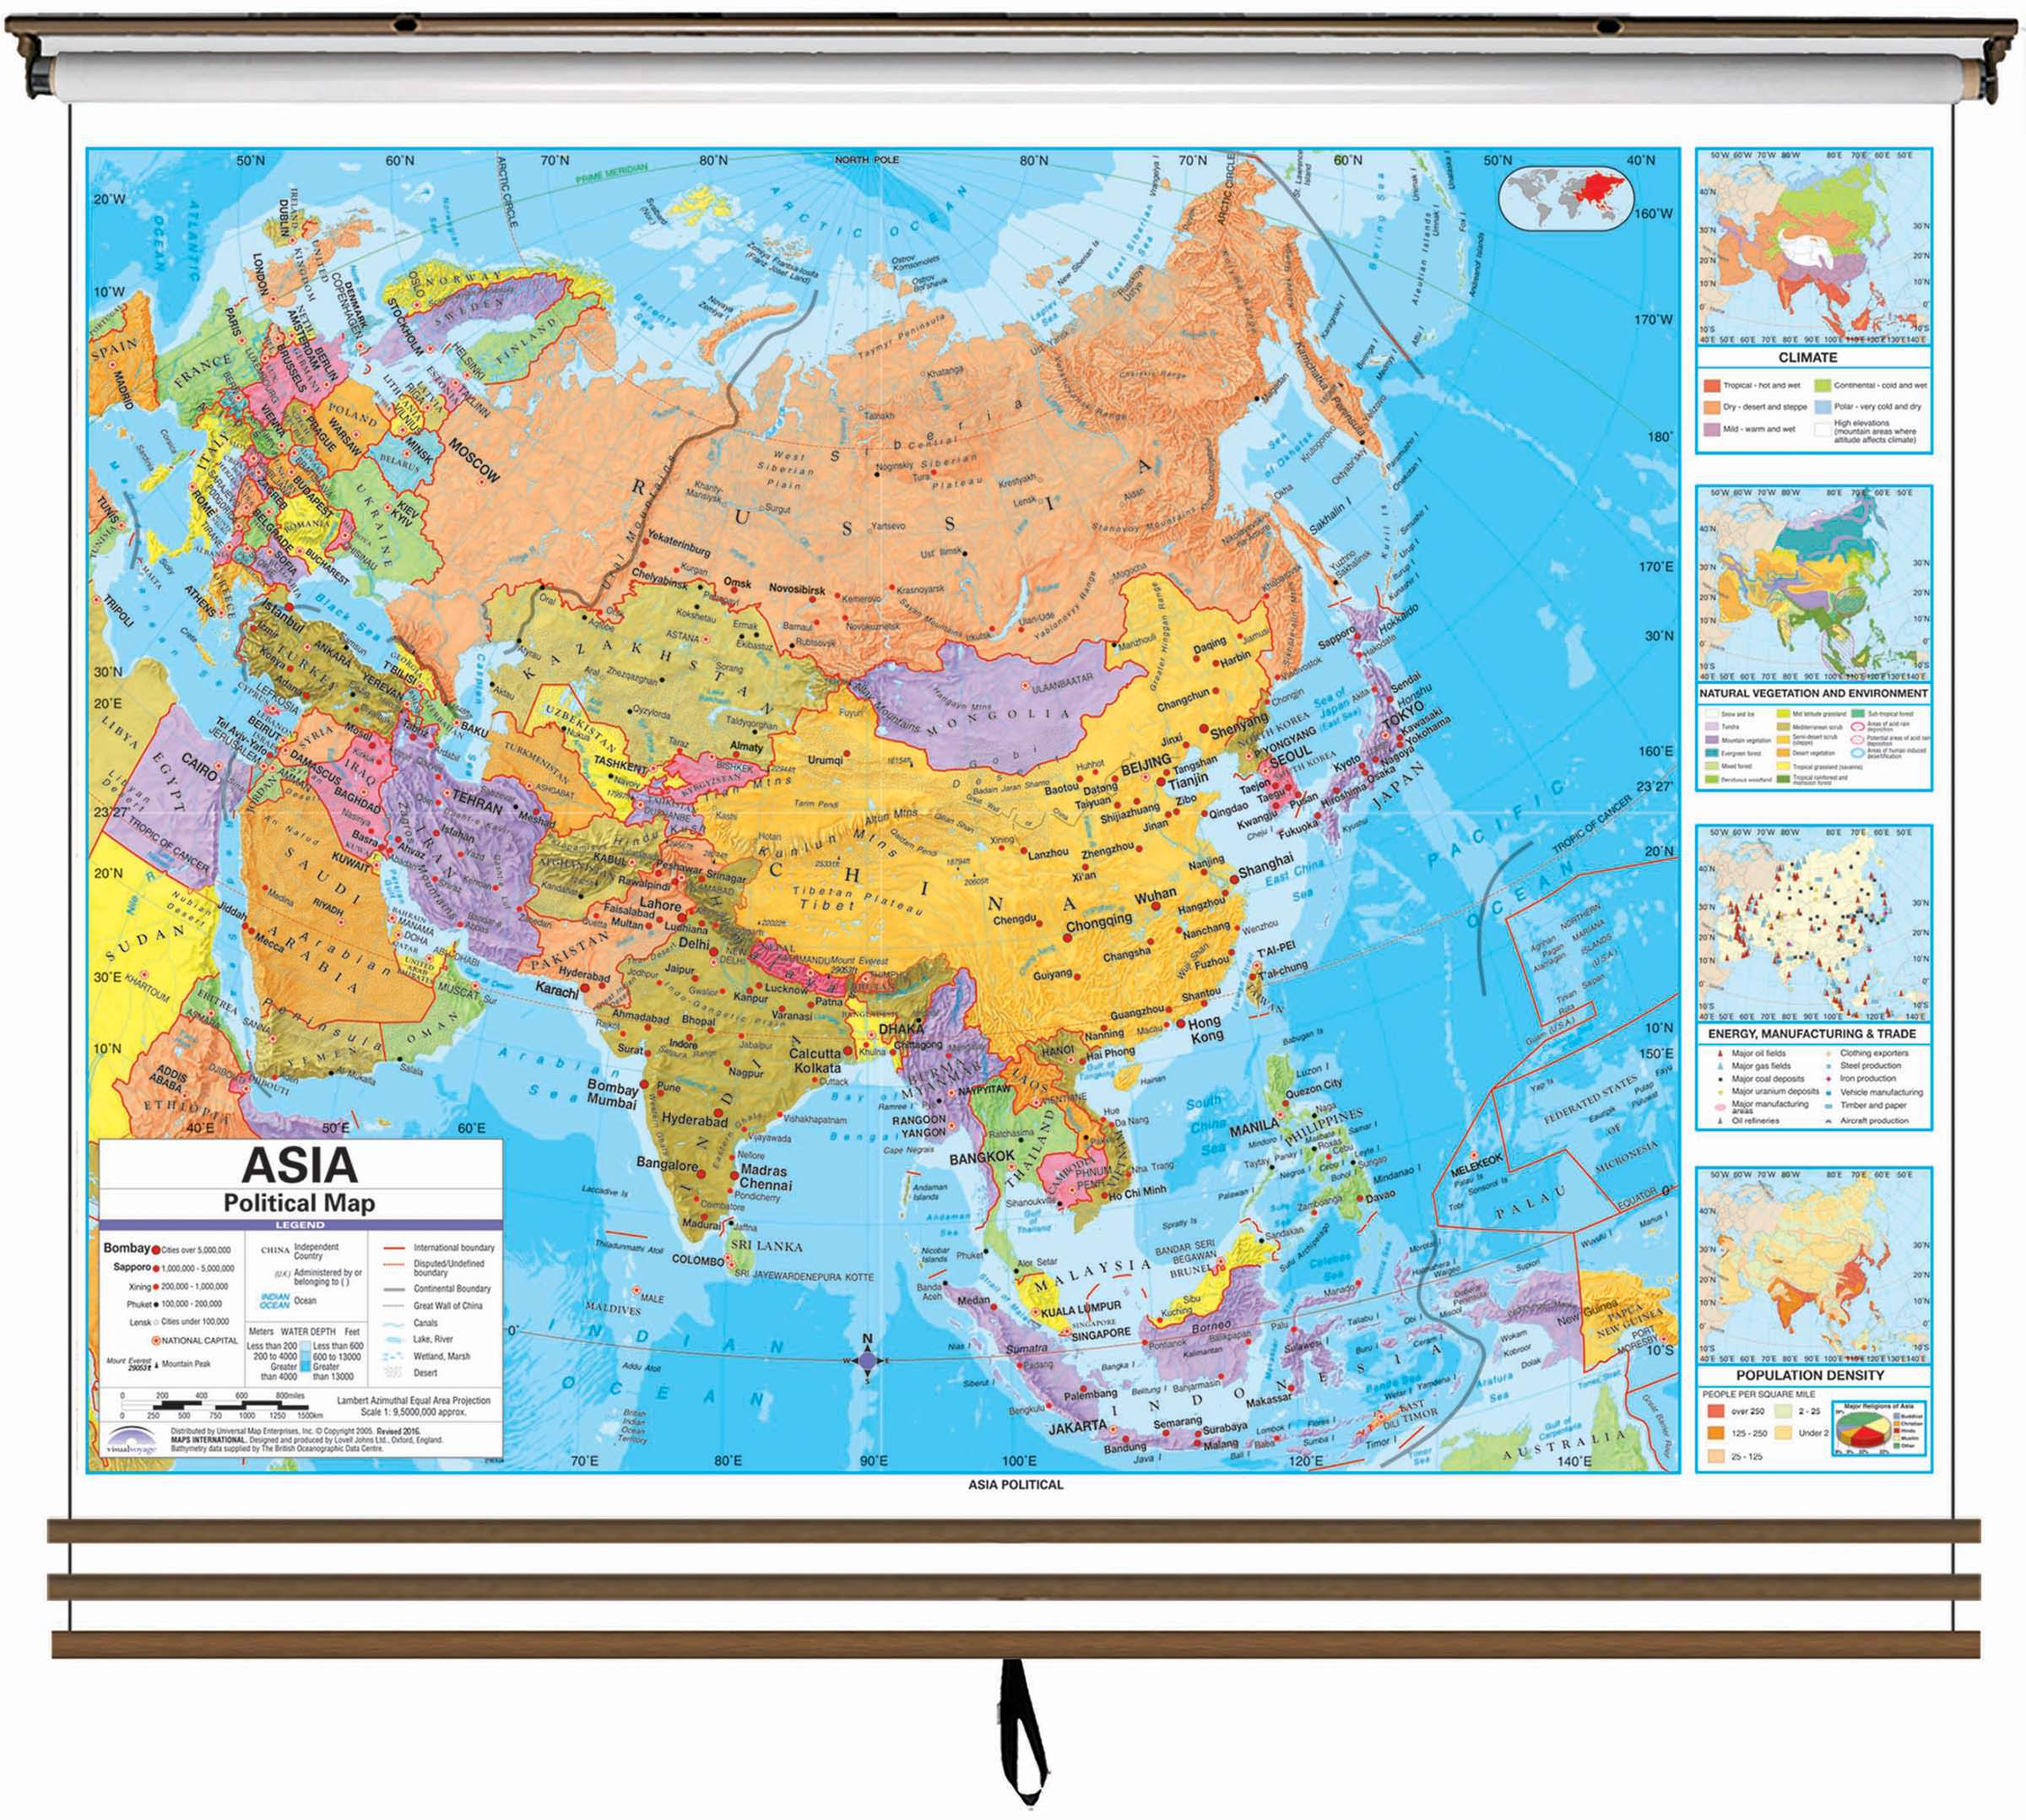 Map Of The Eastern Hemisphere Eastern Hemisphere Advanced Political Wall Map Set on Roller w